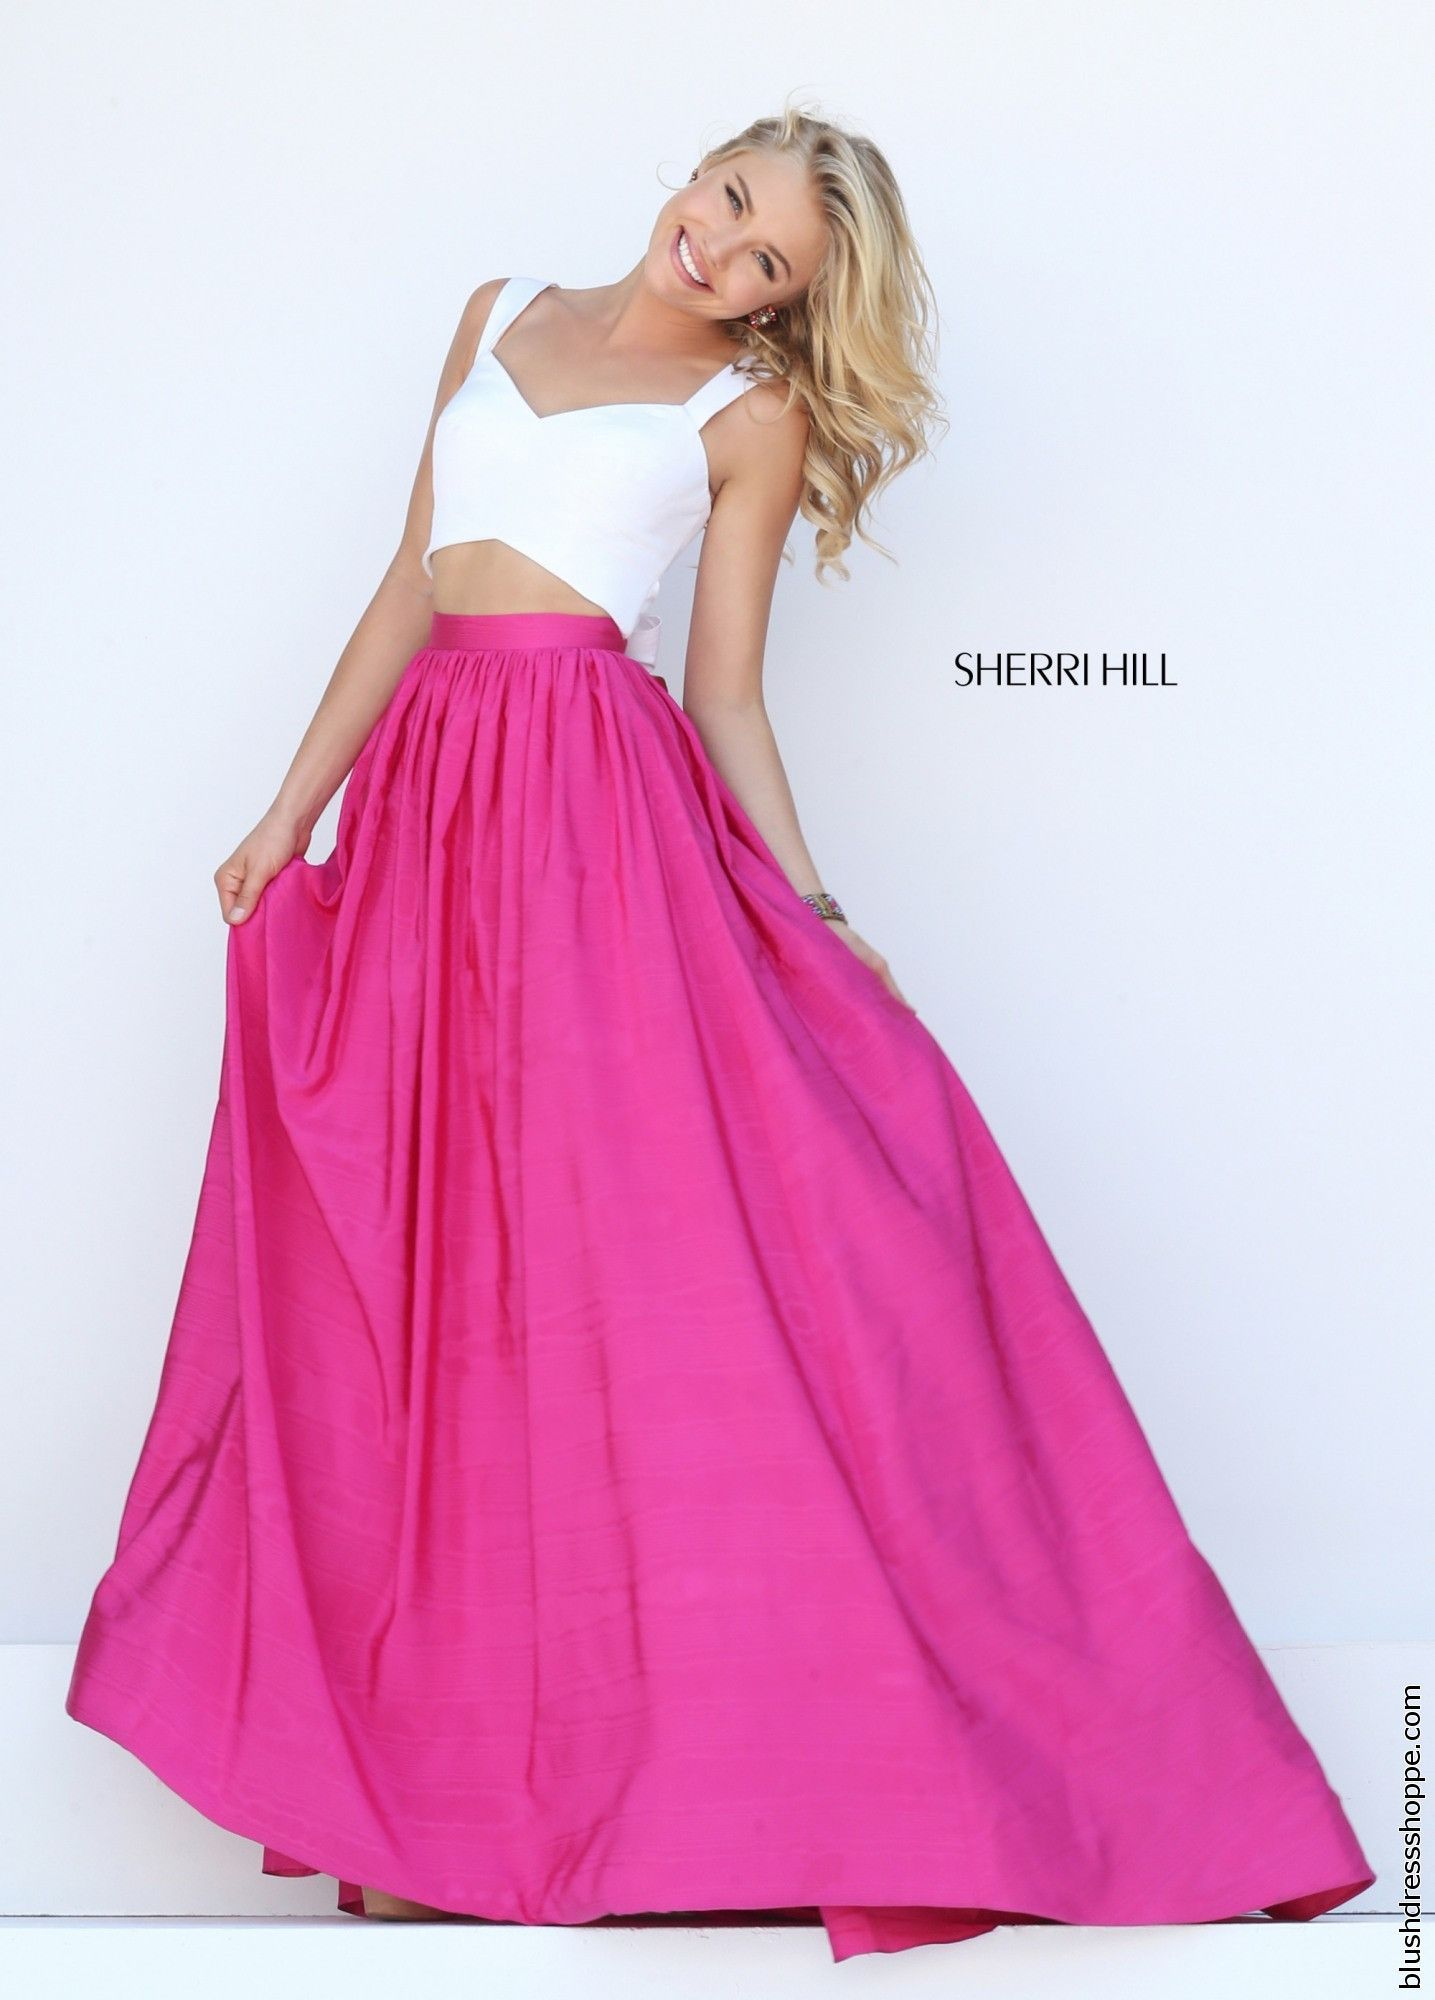 Sherri Hill Dress 50458 at Prom Dress Shop